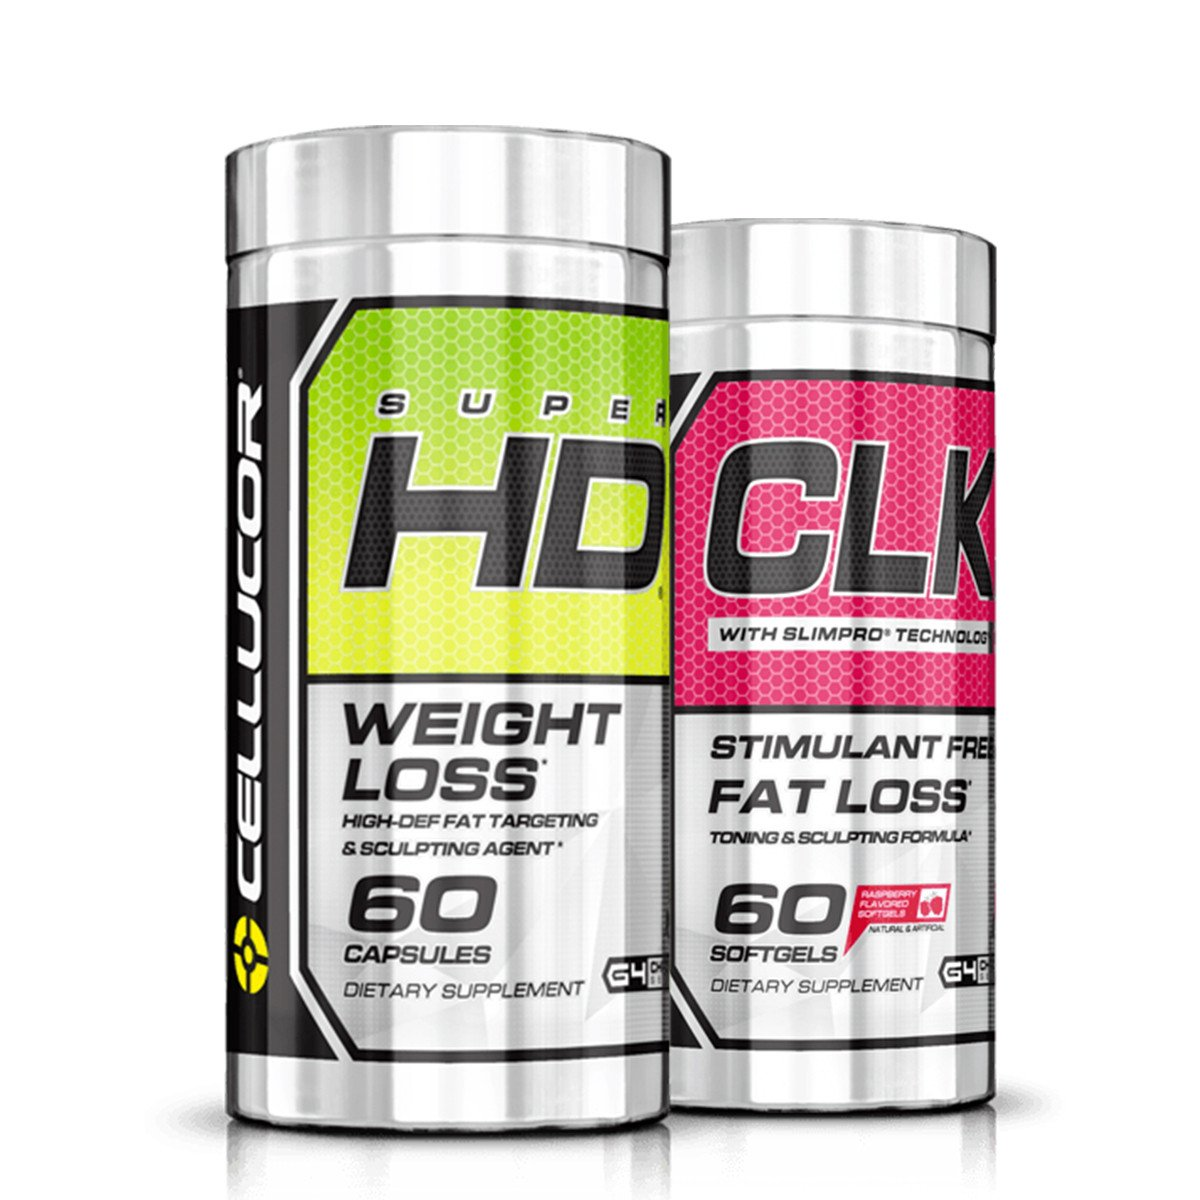 Weight Loss Combo Kit Campusprotein Com